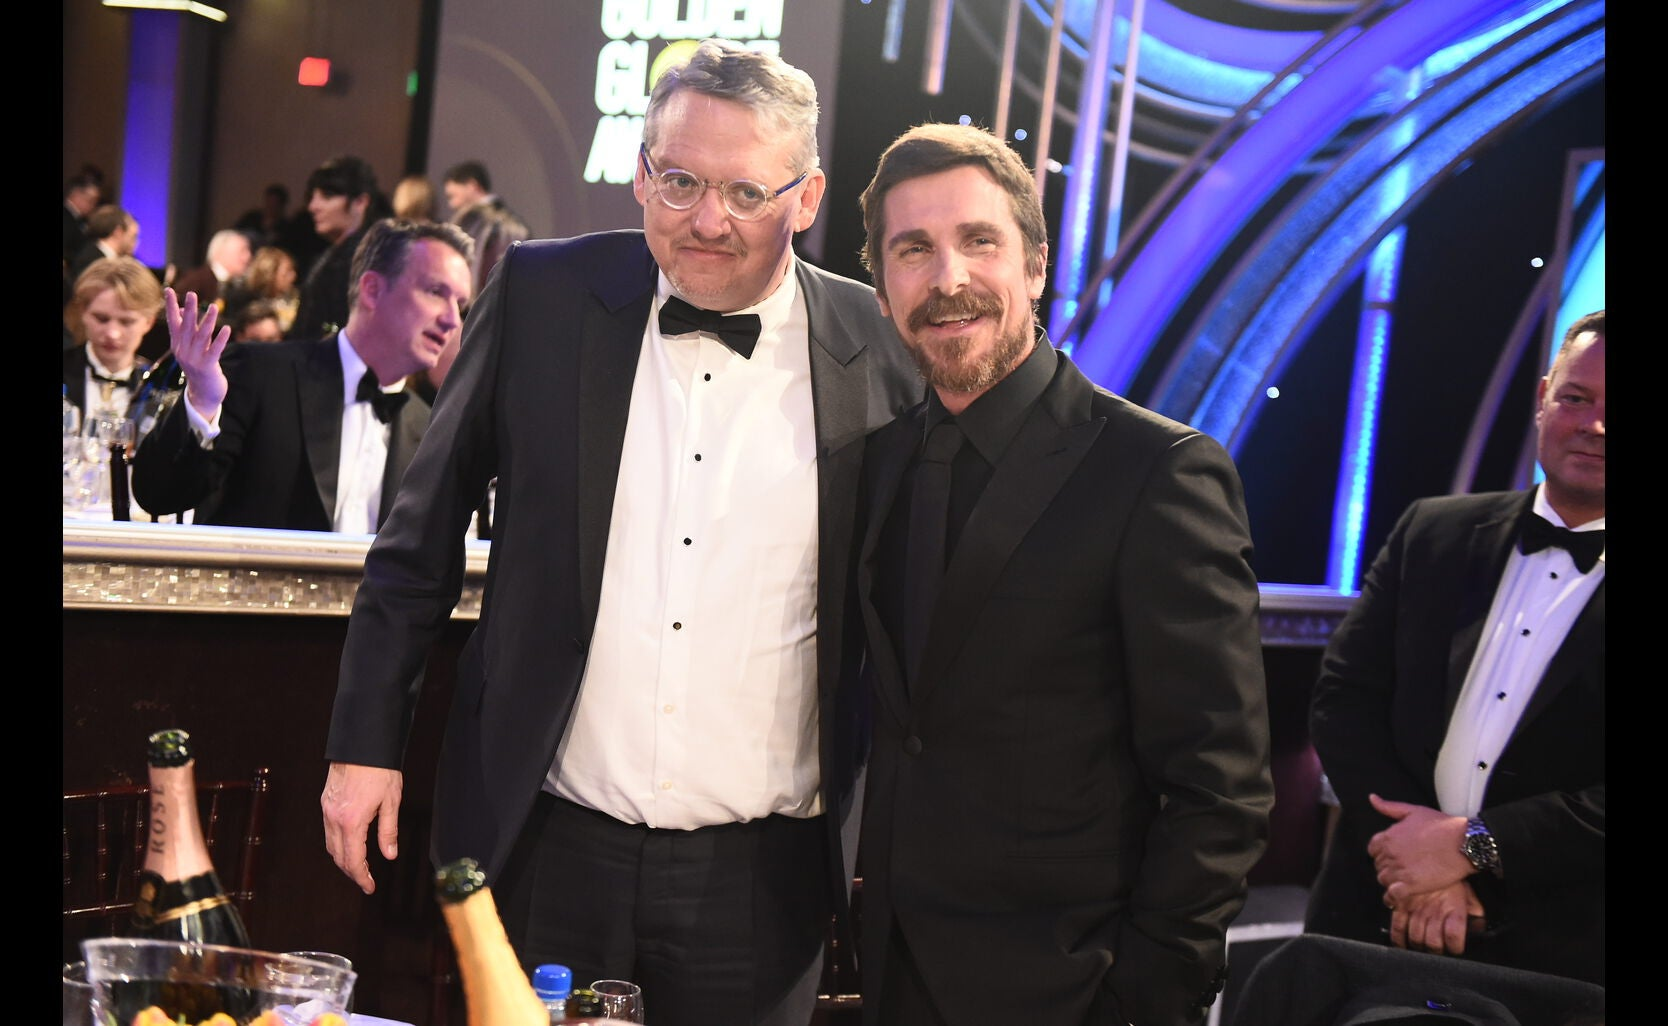 Christian Bale and Director Andy McCay